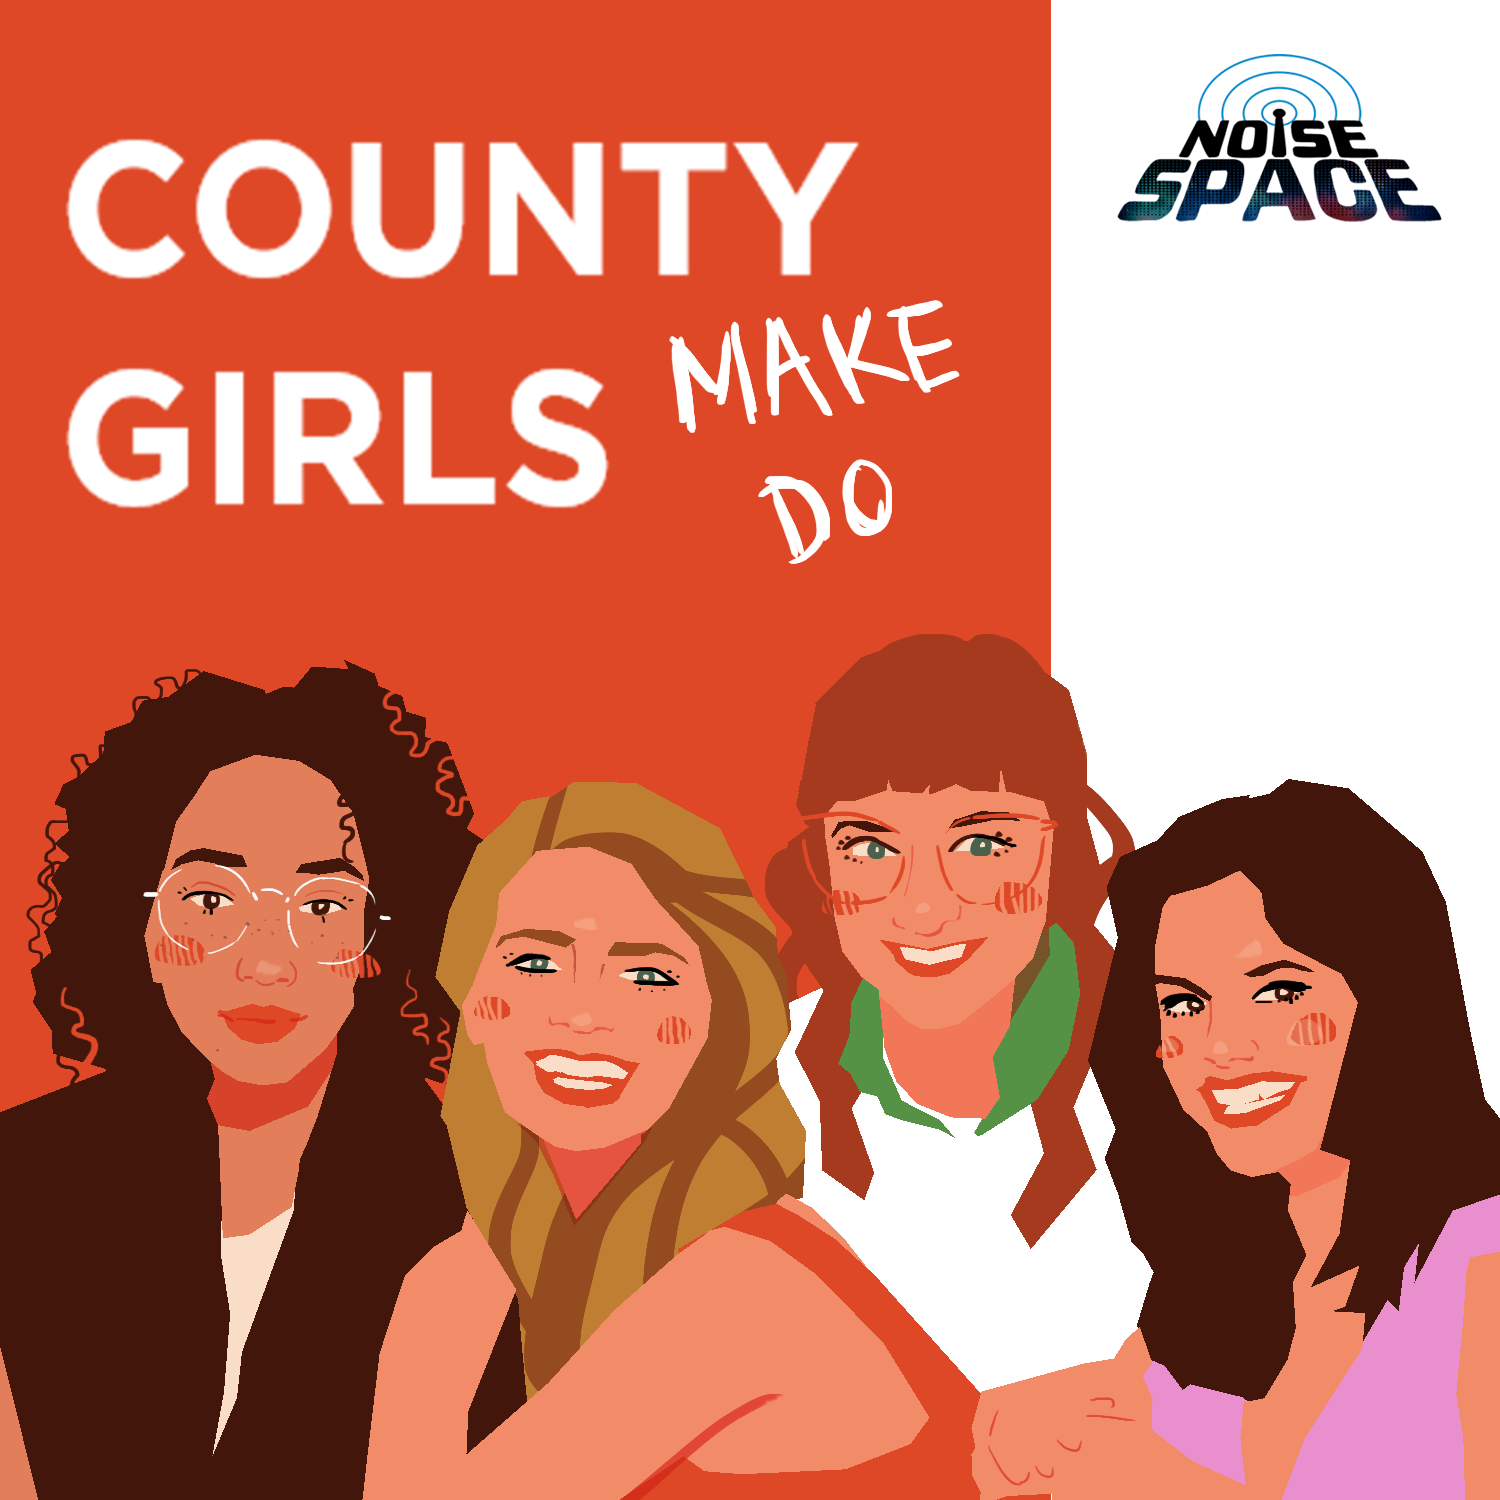 County Girls Make Do